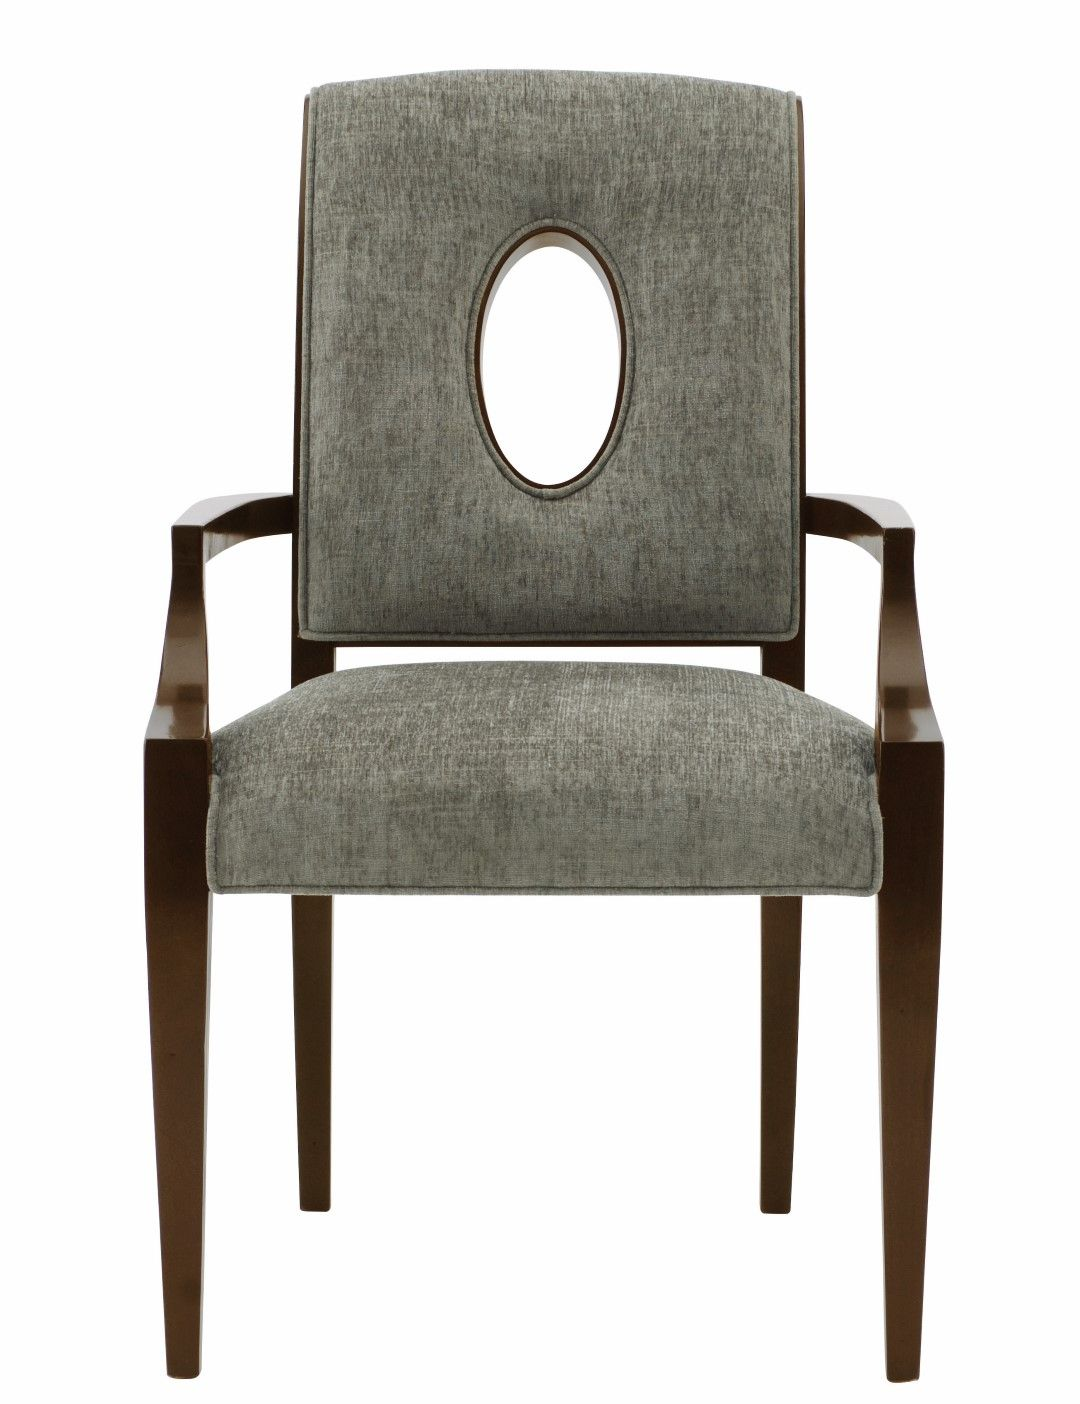 Comfortable arm chairs - Bernhardt Furniture Miramont Arm Chair Open Wood Framed Oval Shape In Chair Back